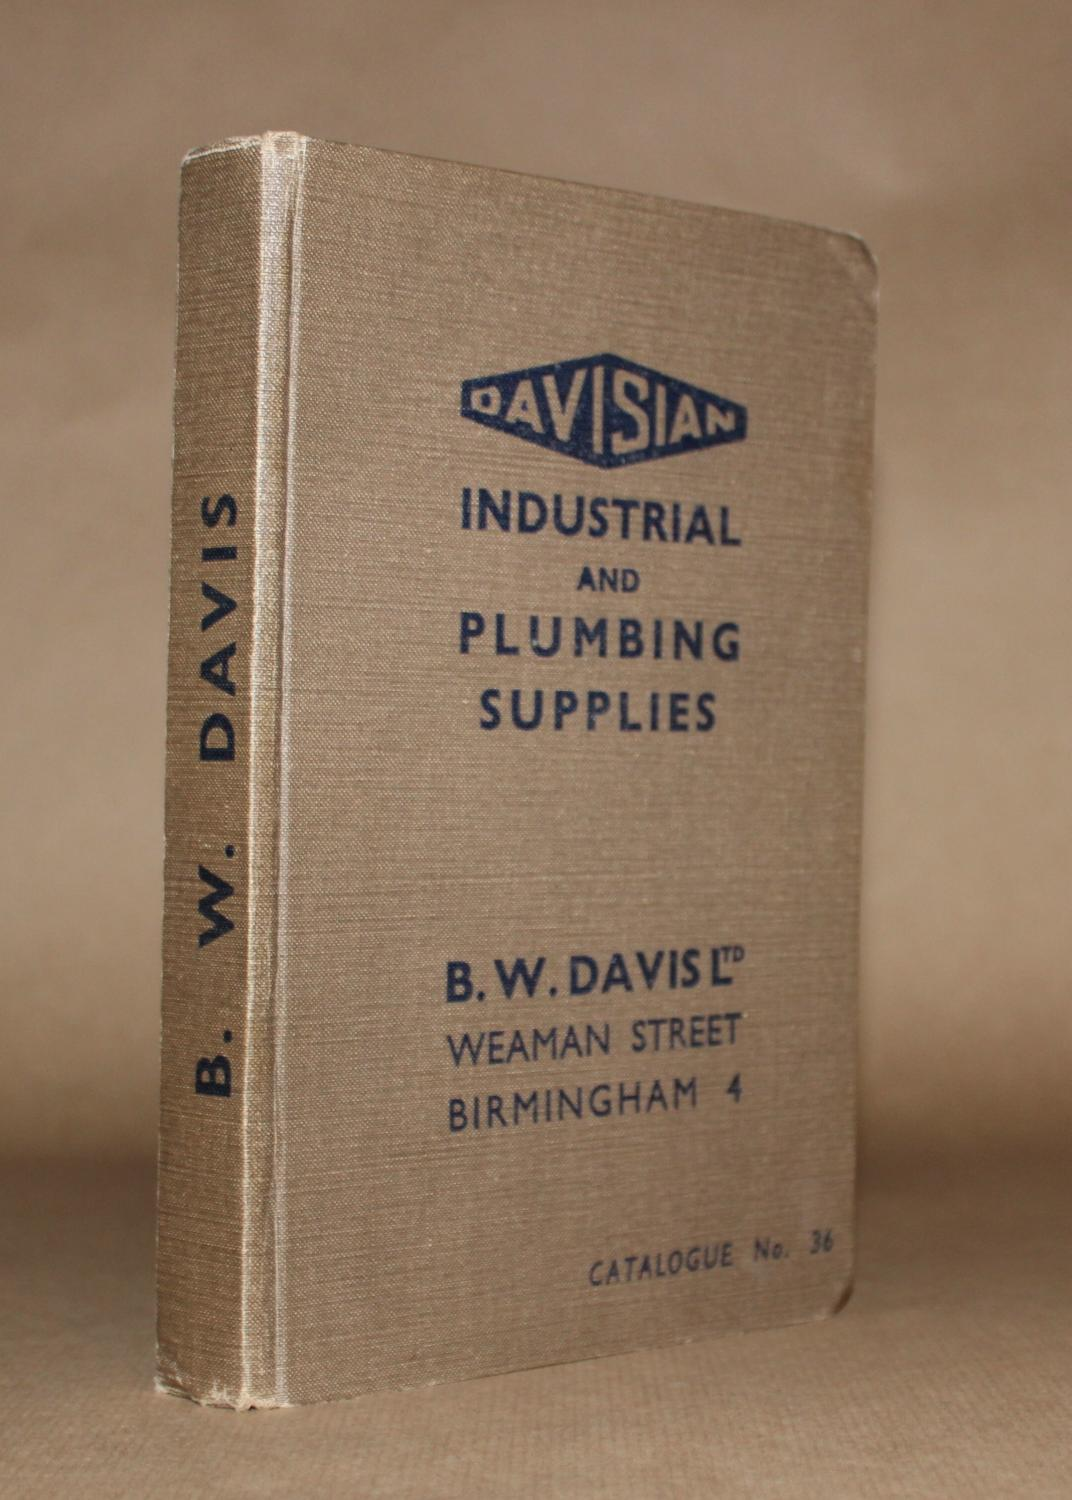 Davisian Industrial and Plumbing Supplies. Catalogue No. 36. Davisian Trade Catalogue. Hardcover 8vo., 314pp., hardback trade catalogue of B. W. Davis Ltd. Weaman Street, Birmingham 4, illustrated throughout, original brown cloth, lettered in dark